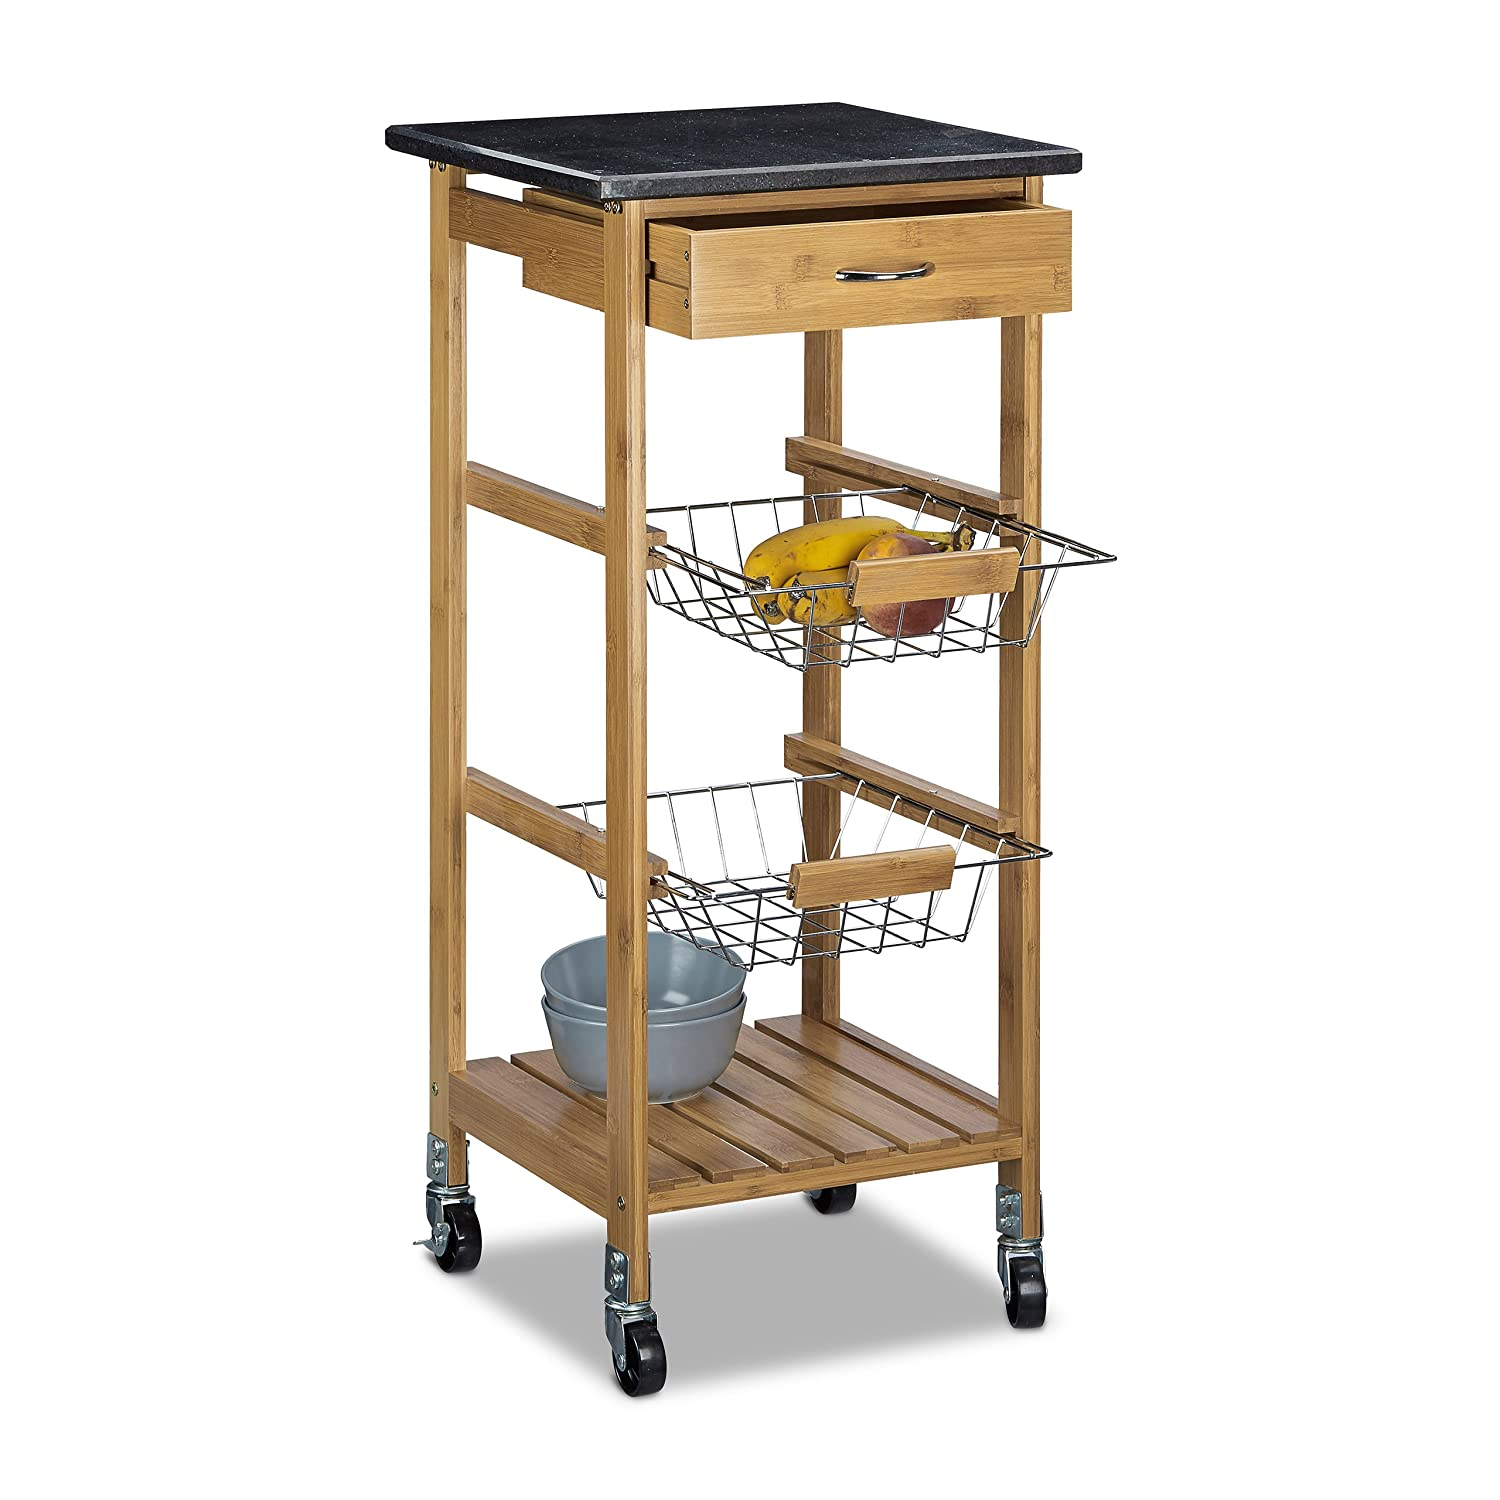 Relaxdays Alfred Kitchen Cart Island Trolley with Wine Glass Holder and Marble Countertop, Bamboo, Natural Brown, 82.5 x 37.5 cm, Small 10020313